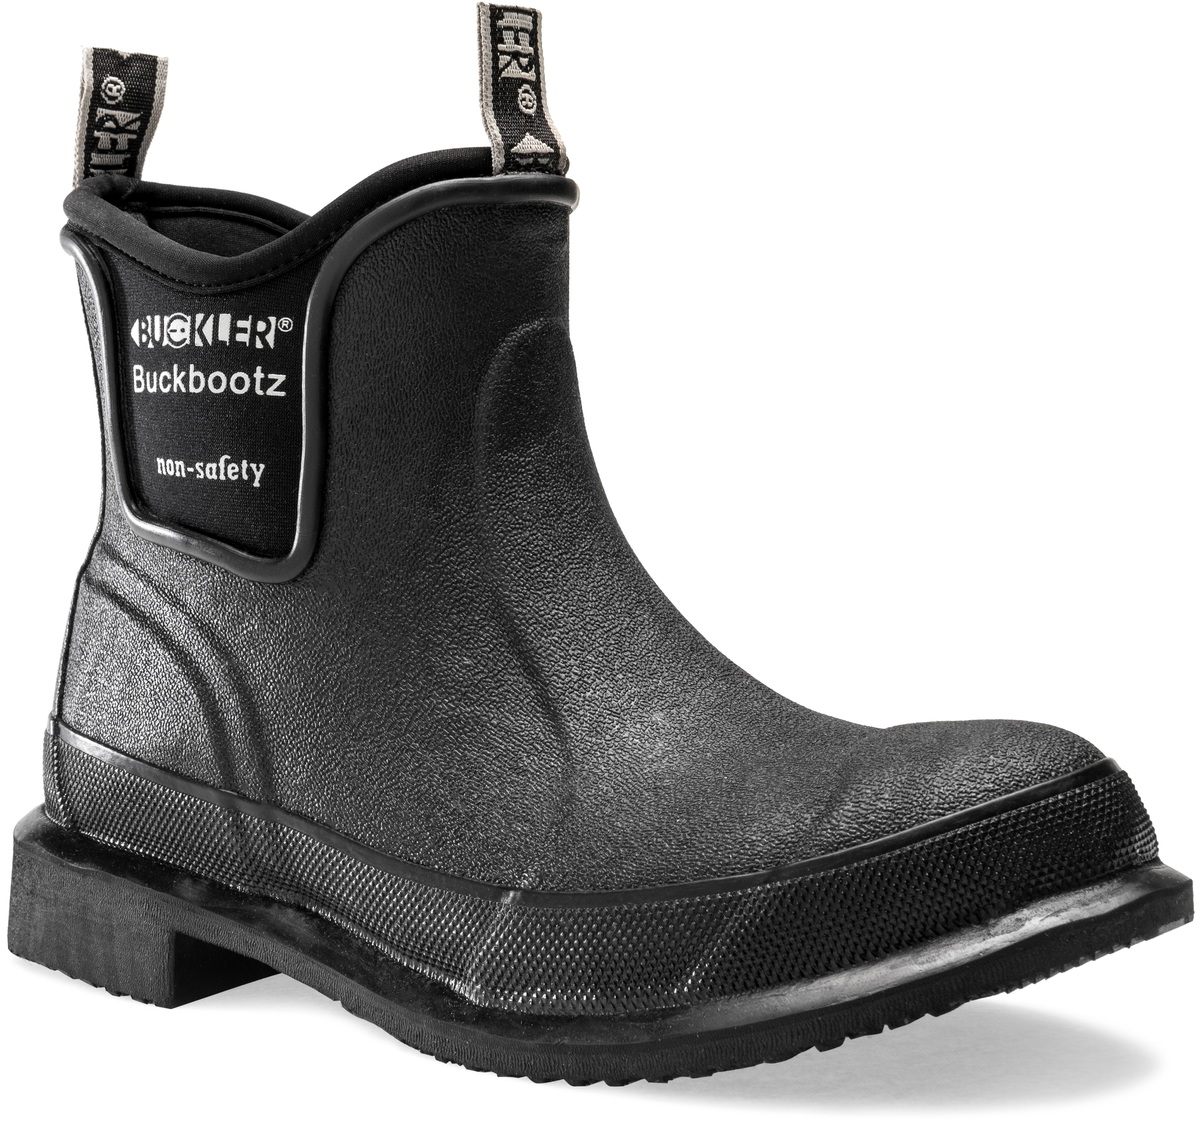 3053ce0dc39 Non-Safety Ankle Boot - Non-Safety Buckbootz - Neoprene/Rubber Non ...